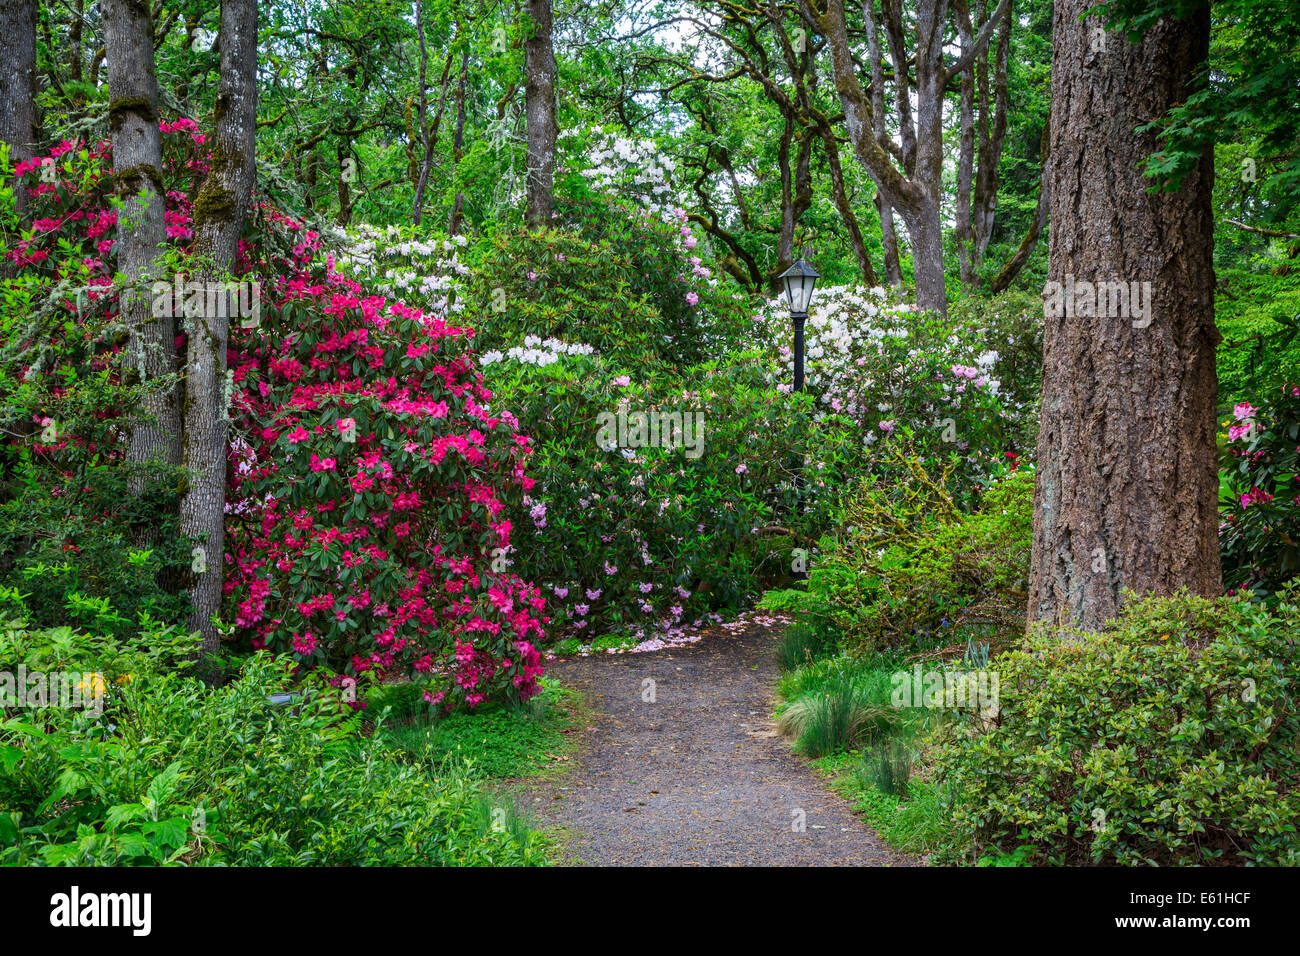 Hendrick's Park Rhododendron Gardens in Eugene, Oregon, USA. Stock Photo